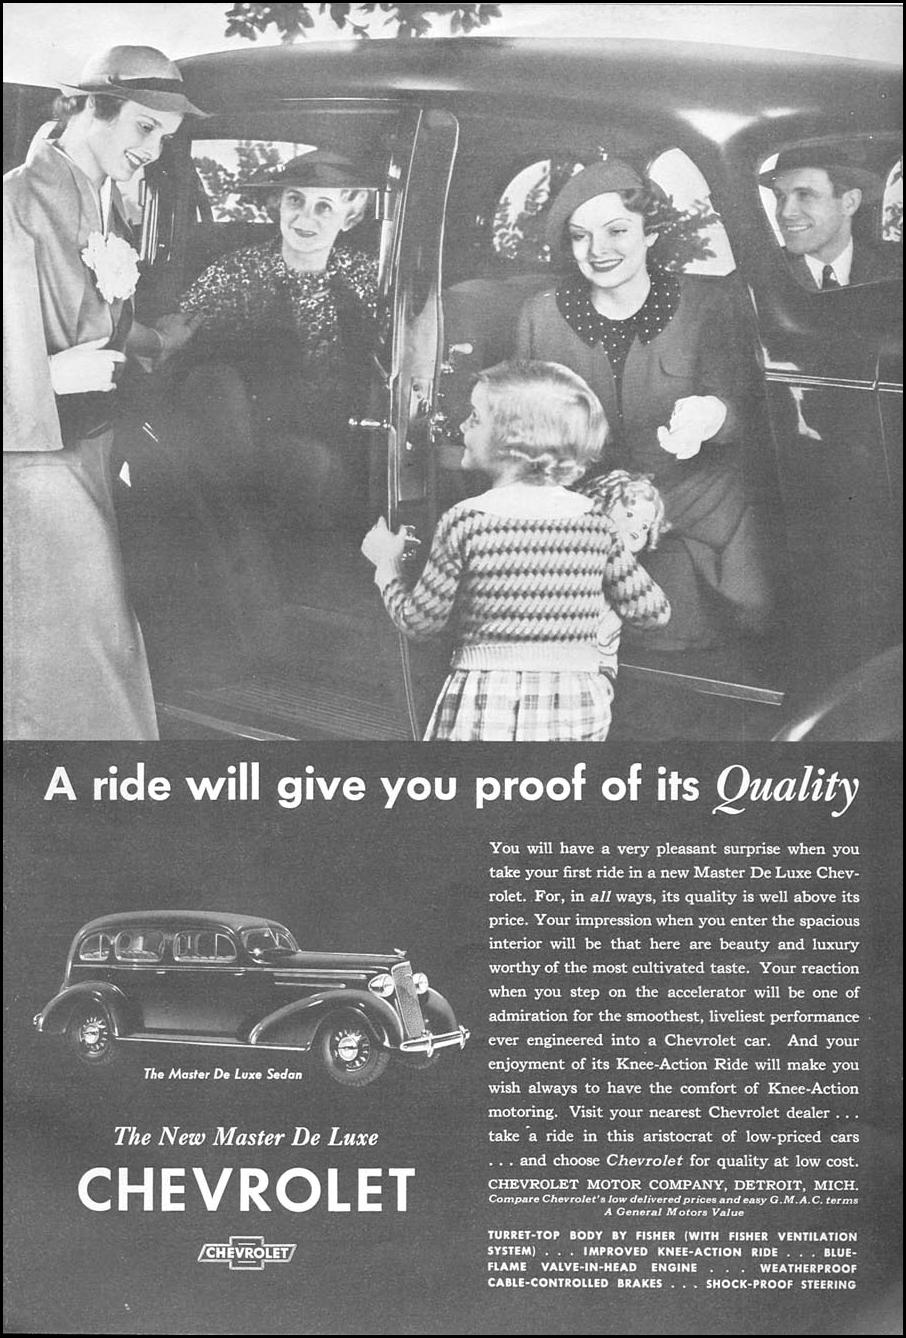 CHEVROLET AUTOMOBILES GOOD HOUSEKEEPING 06/01/1935 p. 147